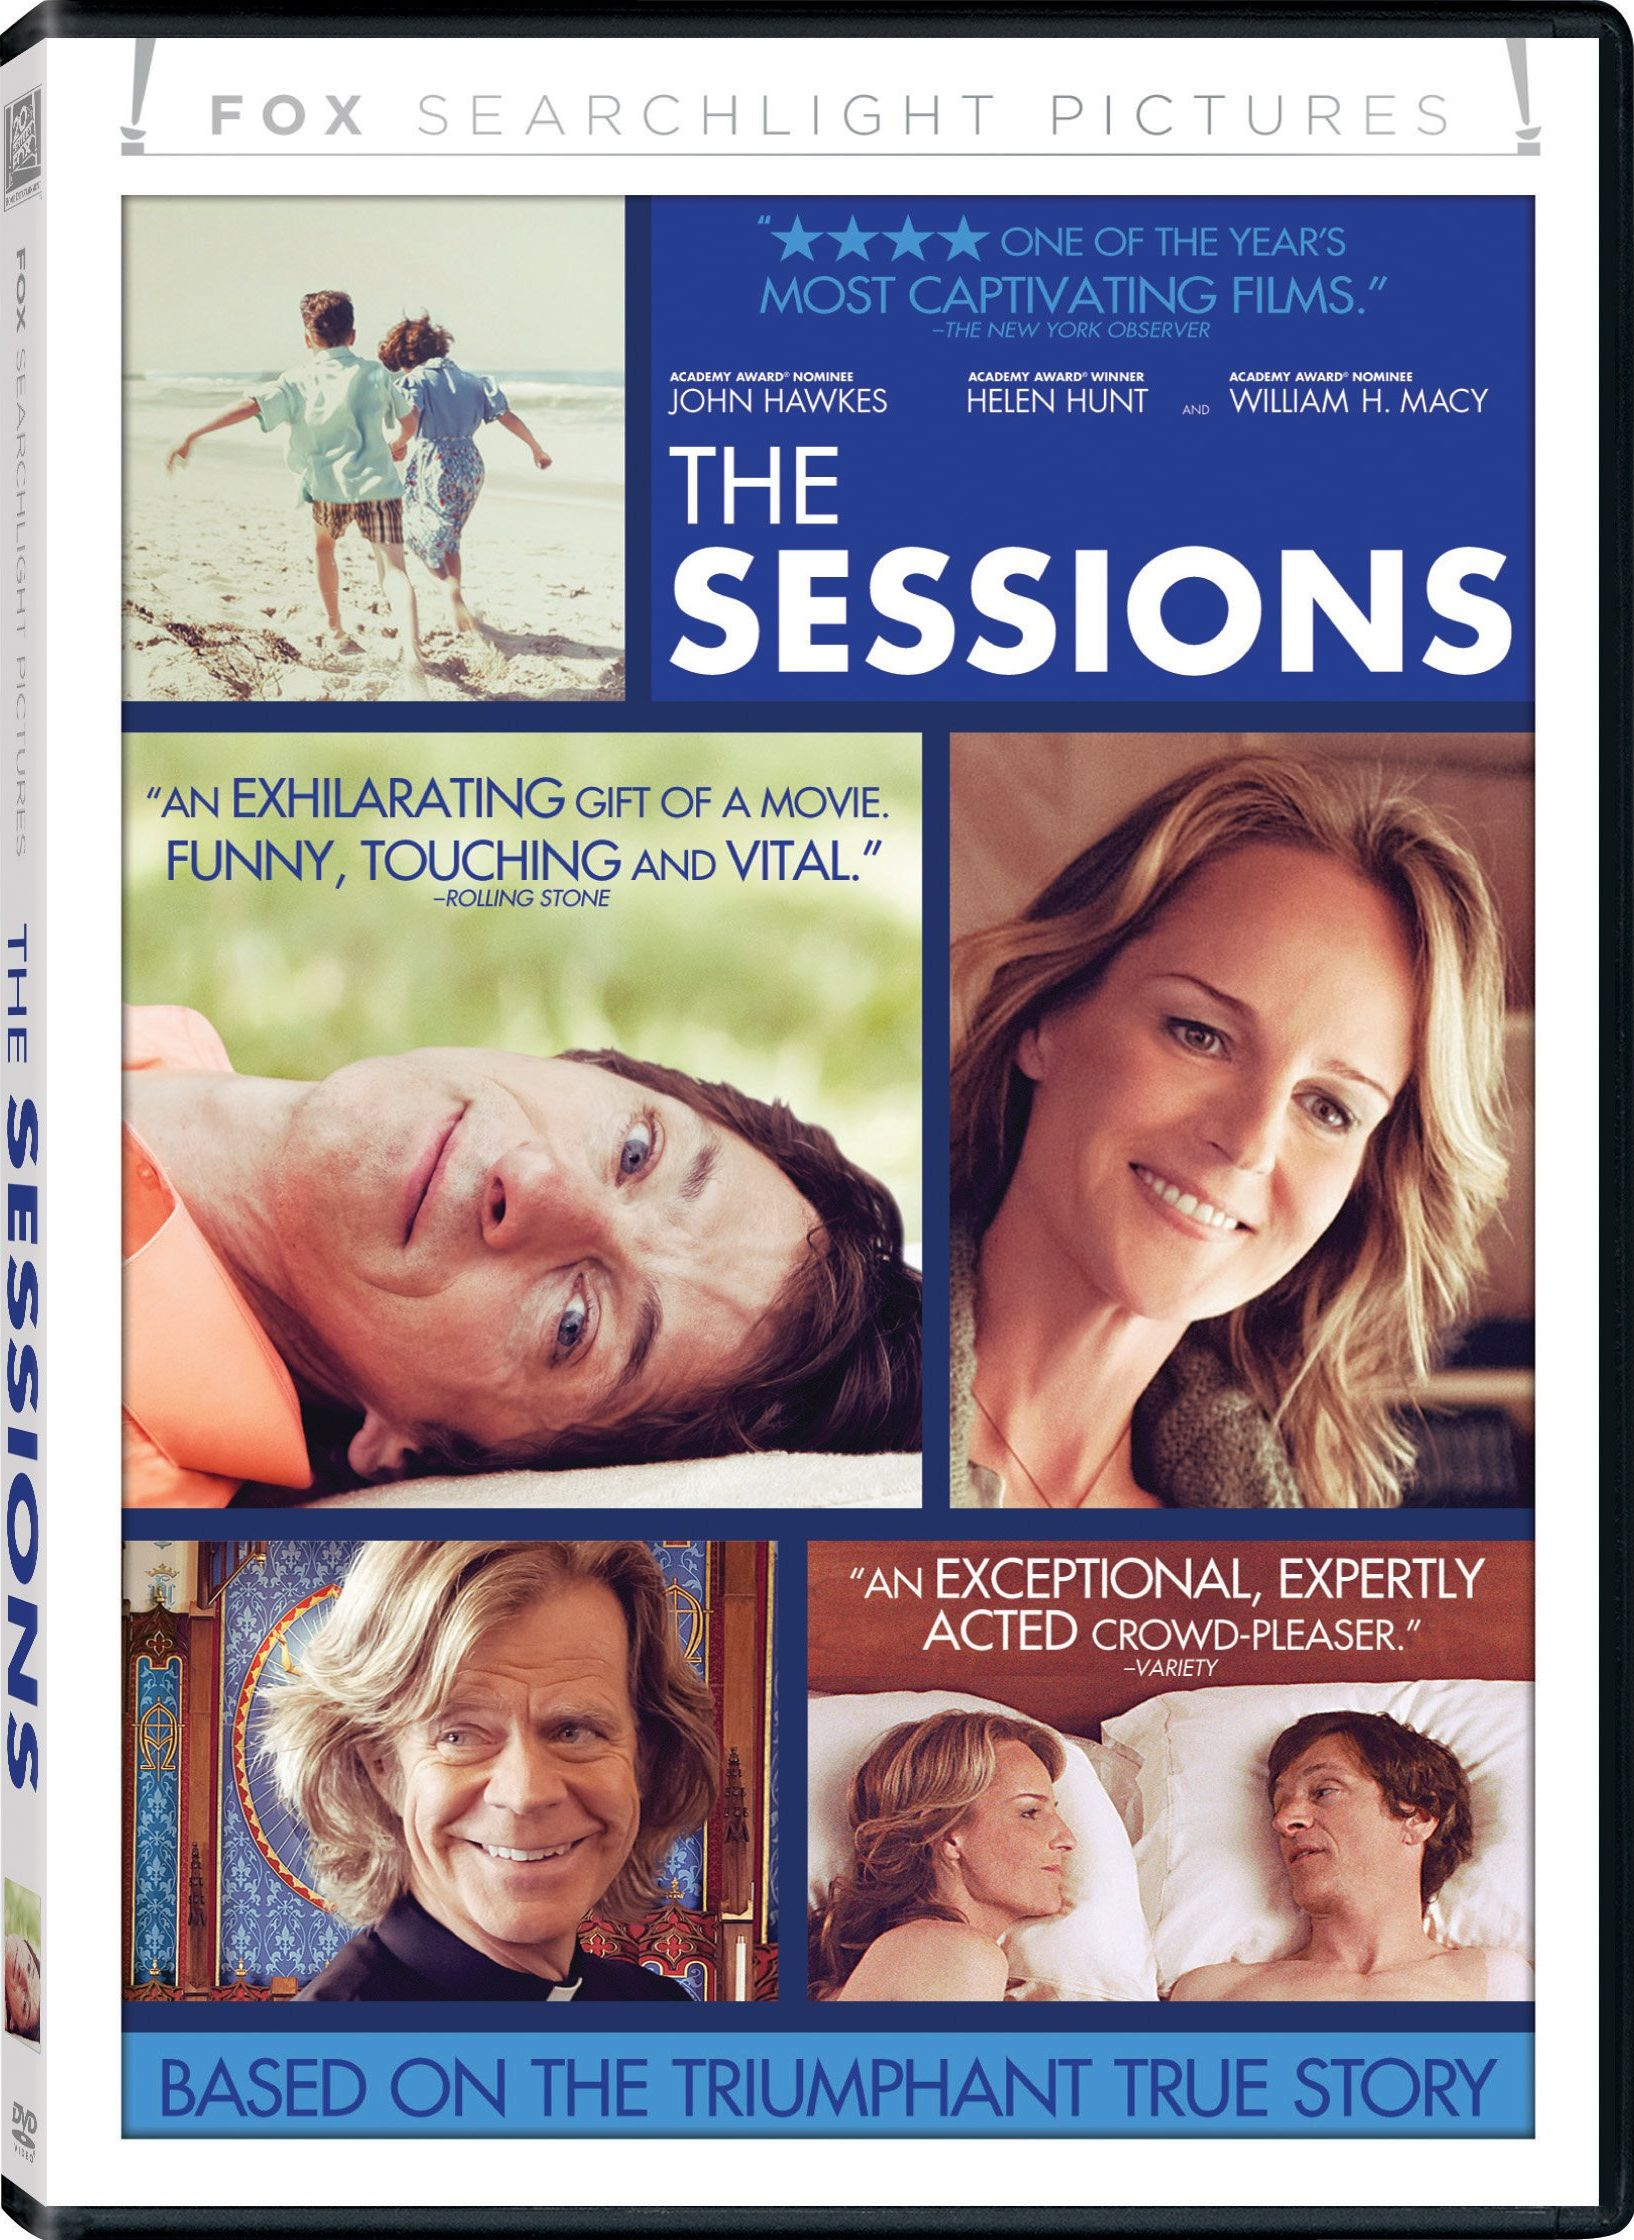 The Sessions 2013 |MULTi DVDR